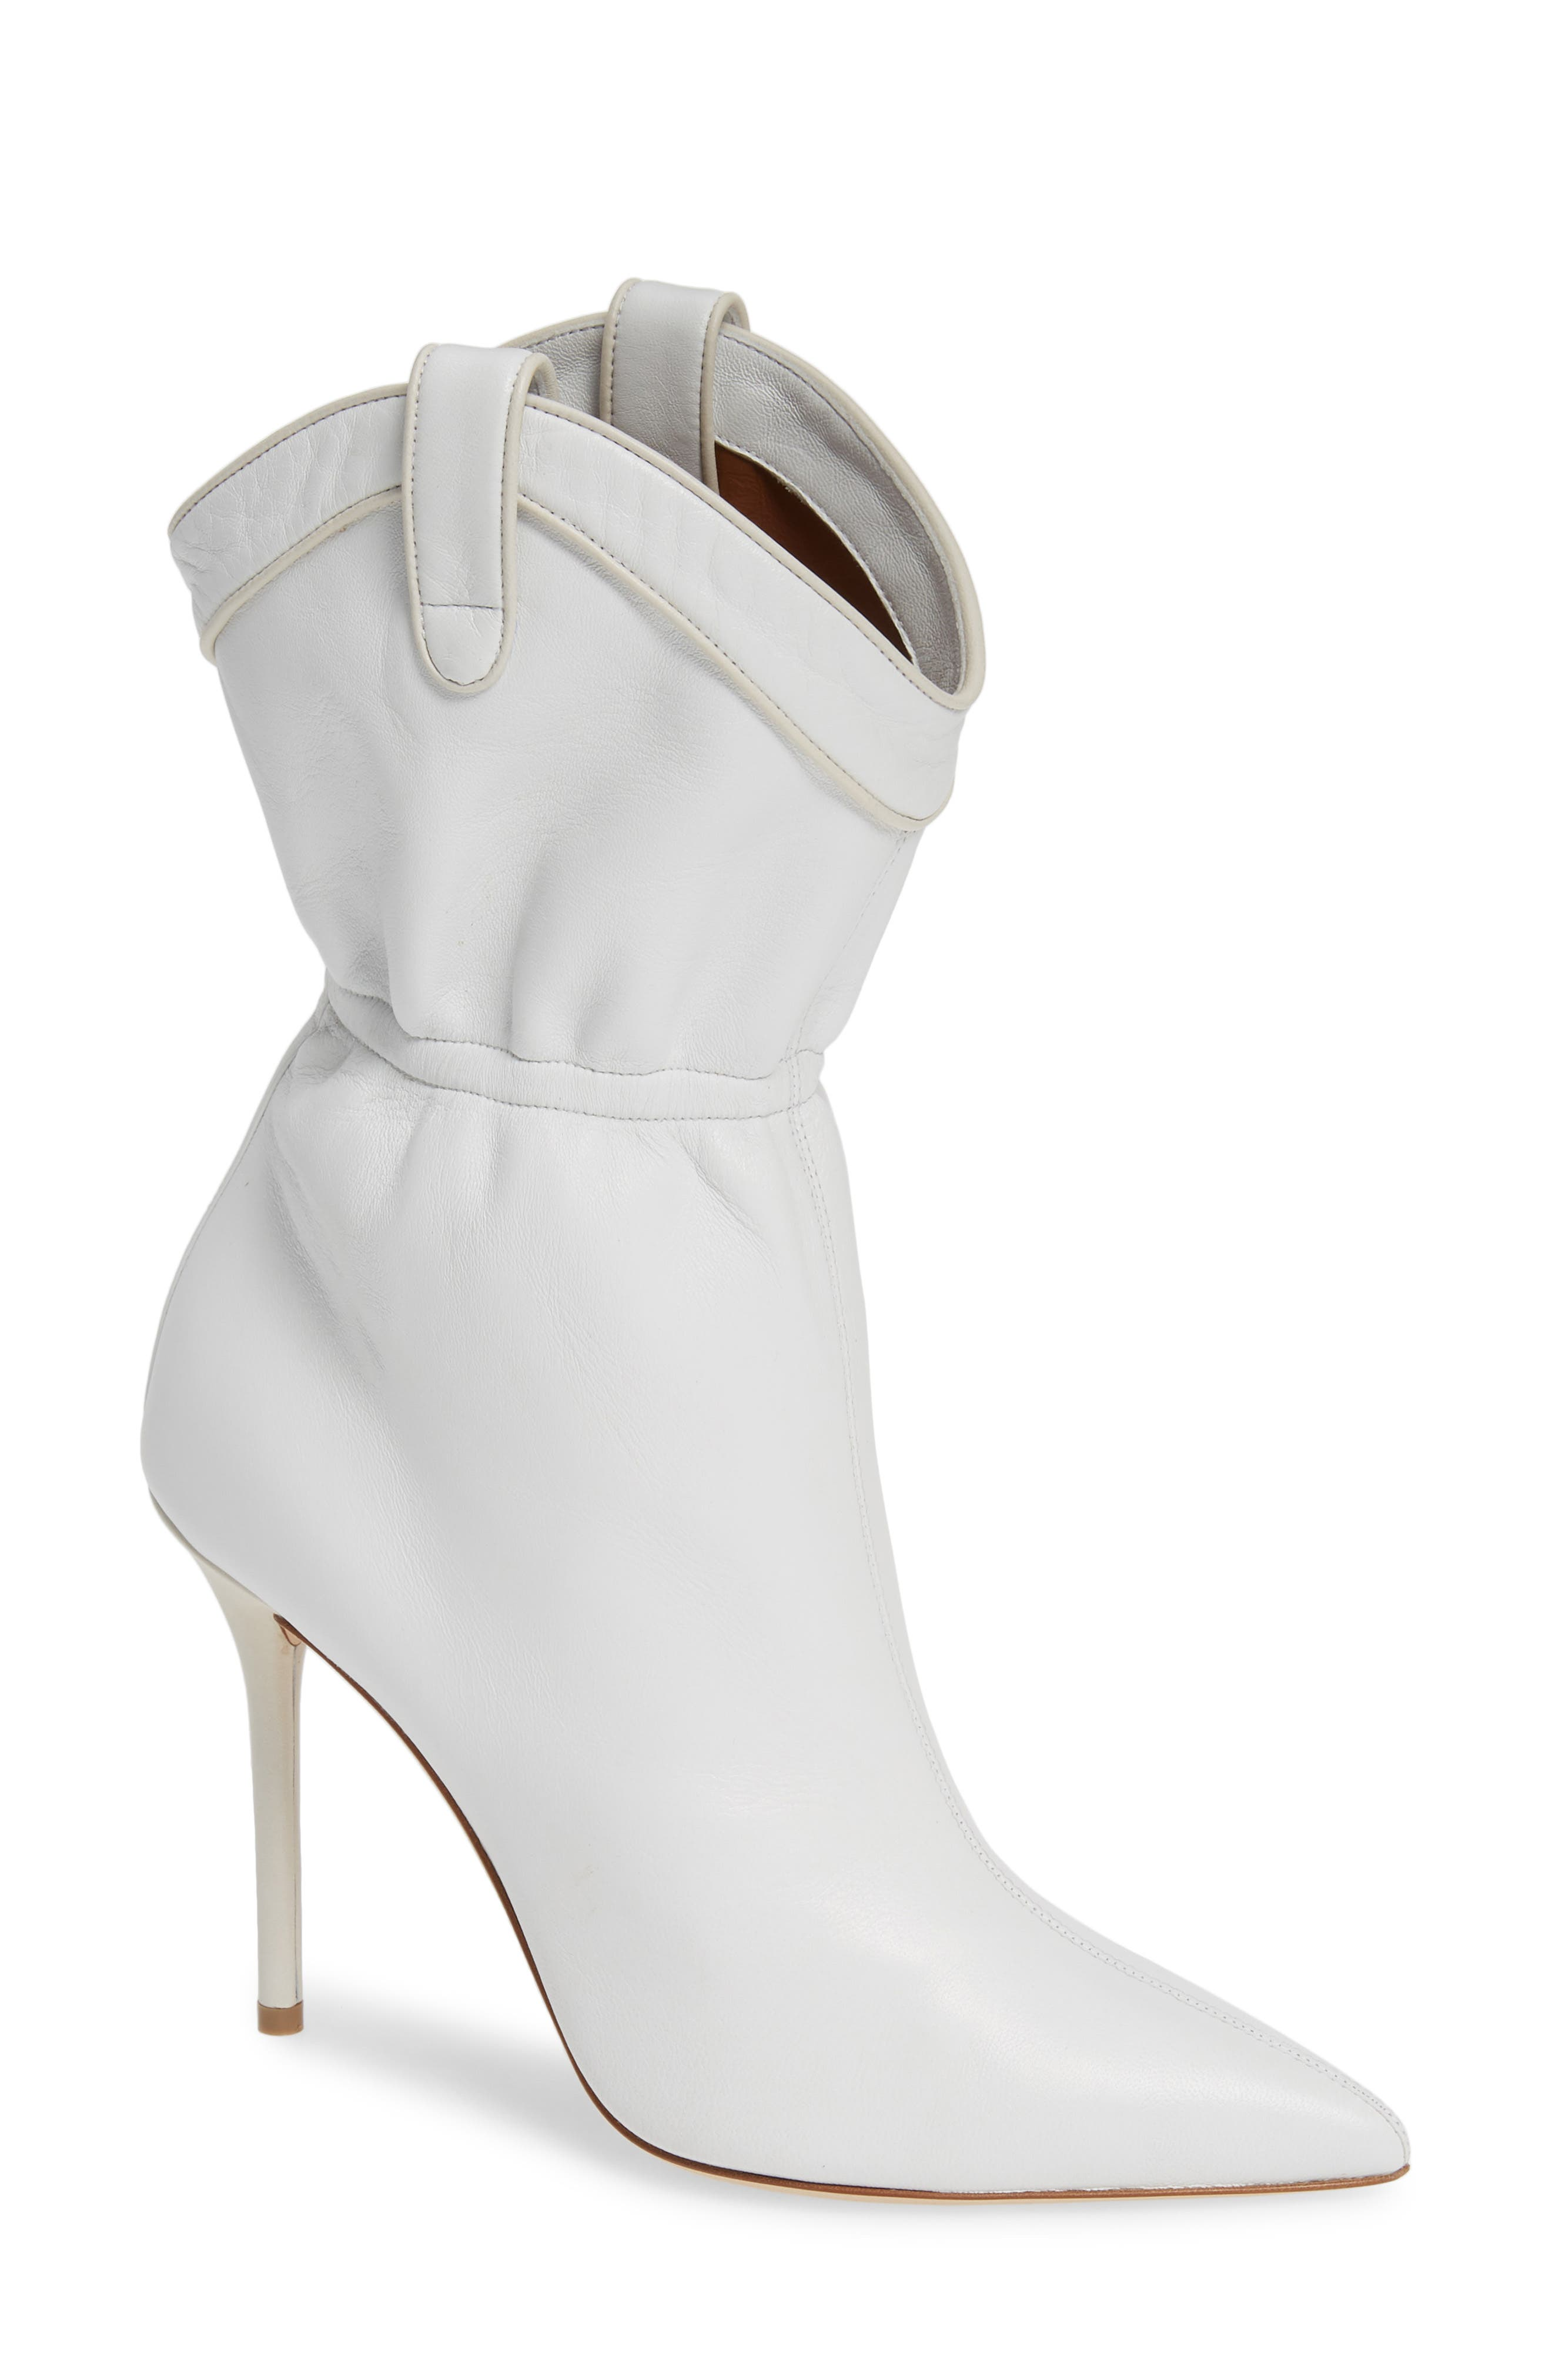 MALONE SOULIERS,                             Daisy Cinched Bootie,                             Main thumbnail 1, color,                             WHITE LEATHER